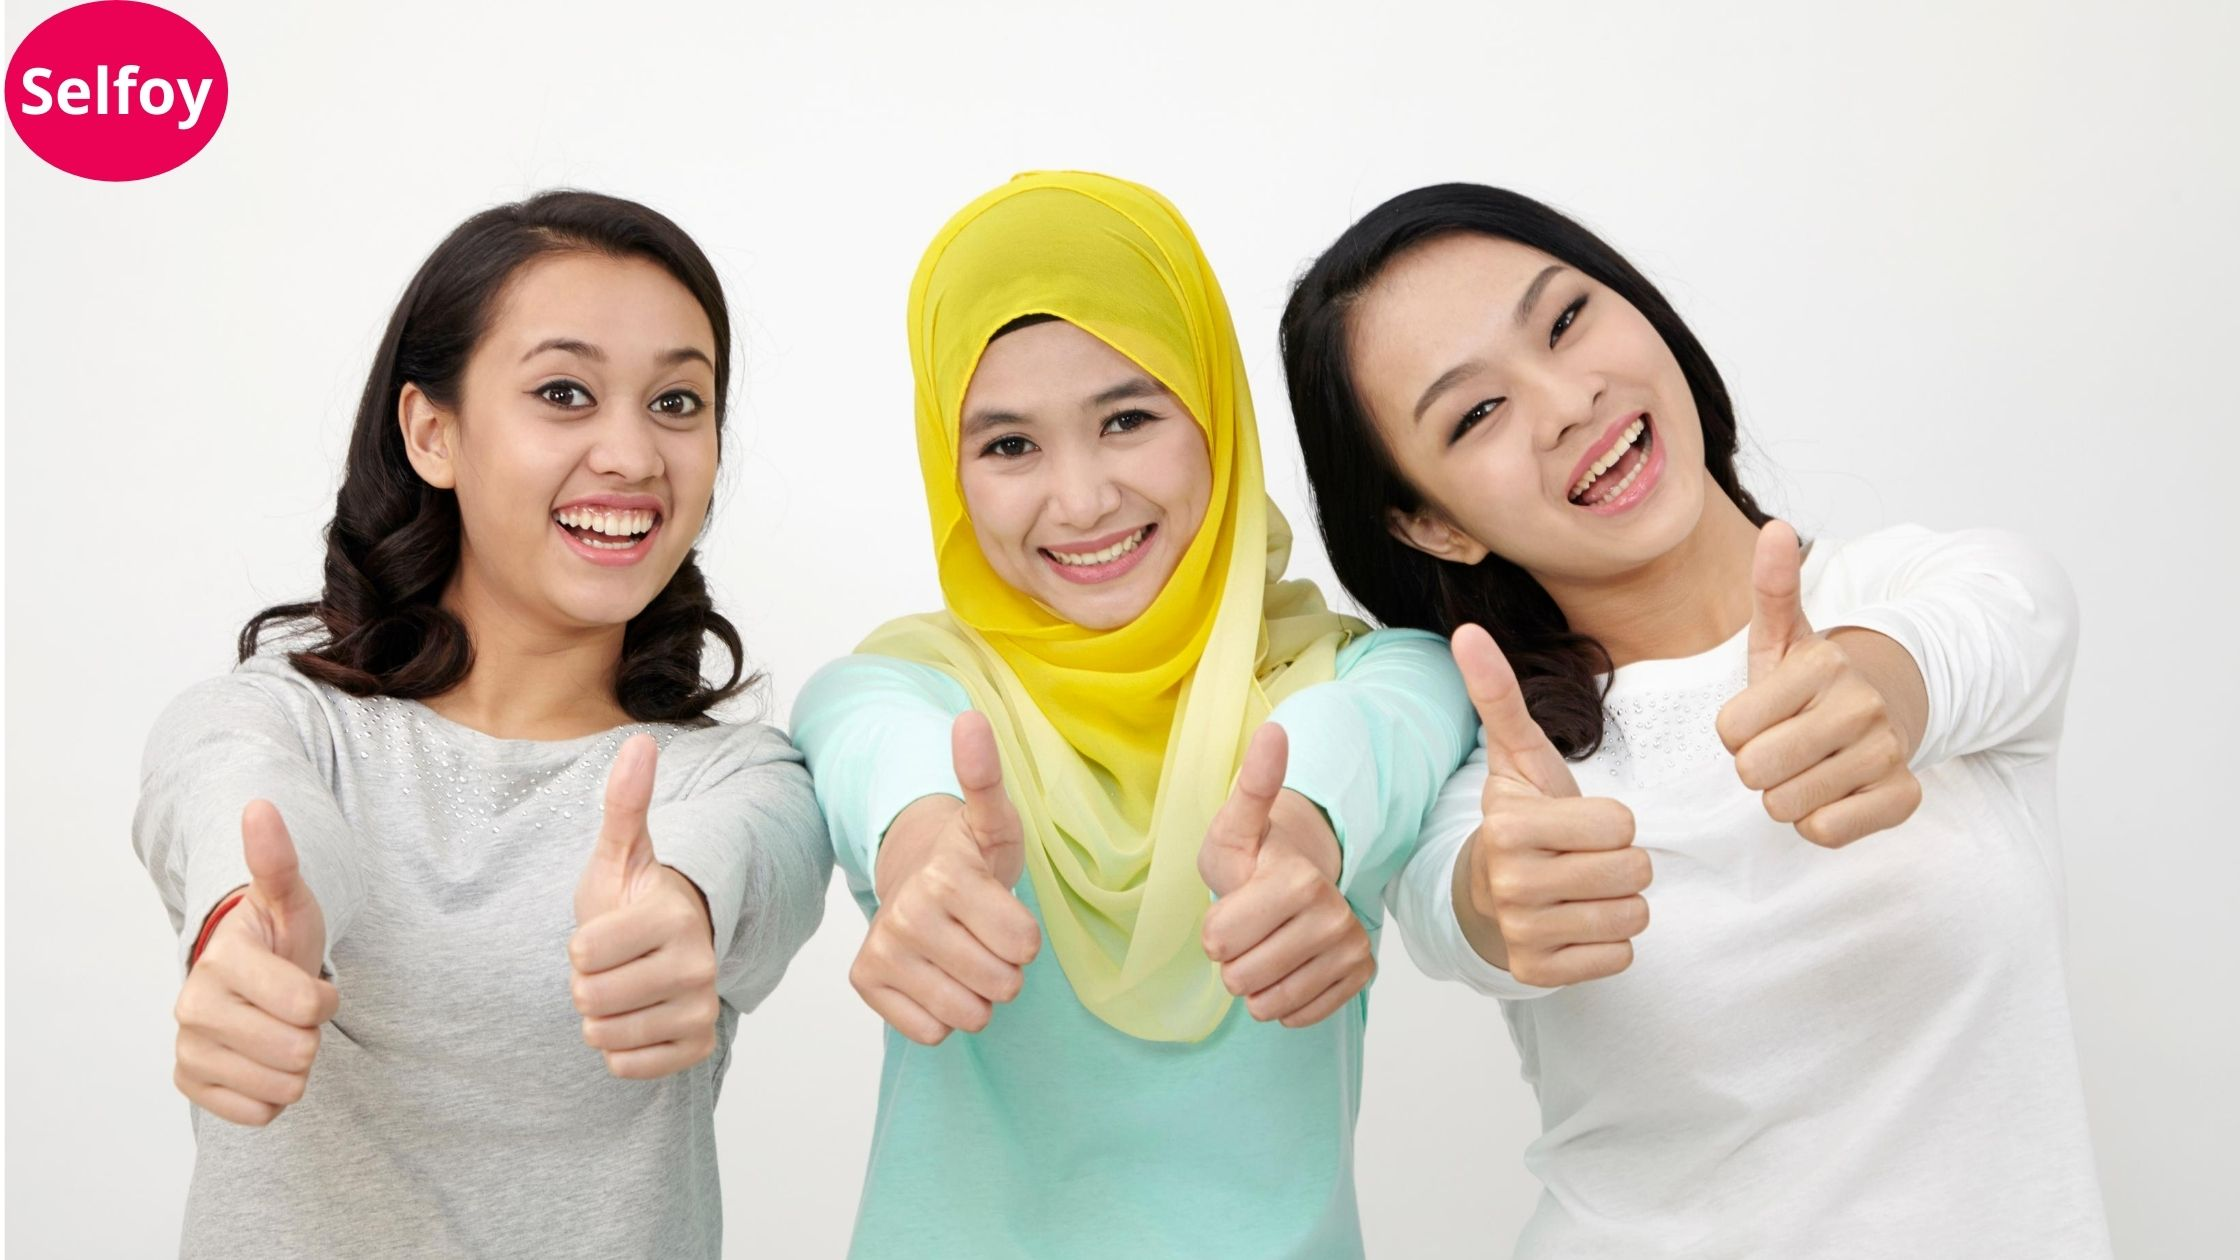 As Good Personal Hygiene can Help to Develop Positive Self Esteem, Three girls smiling and giving all the best